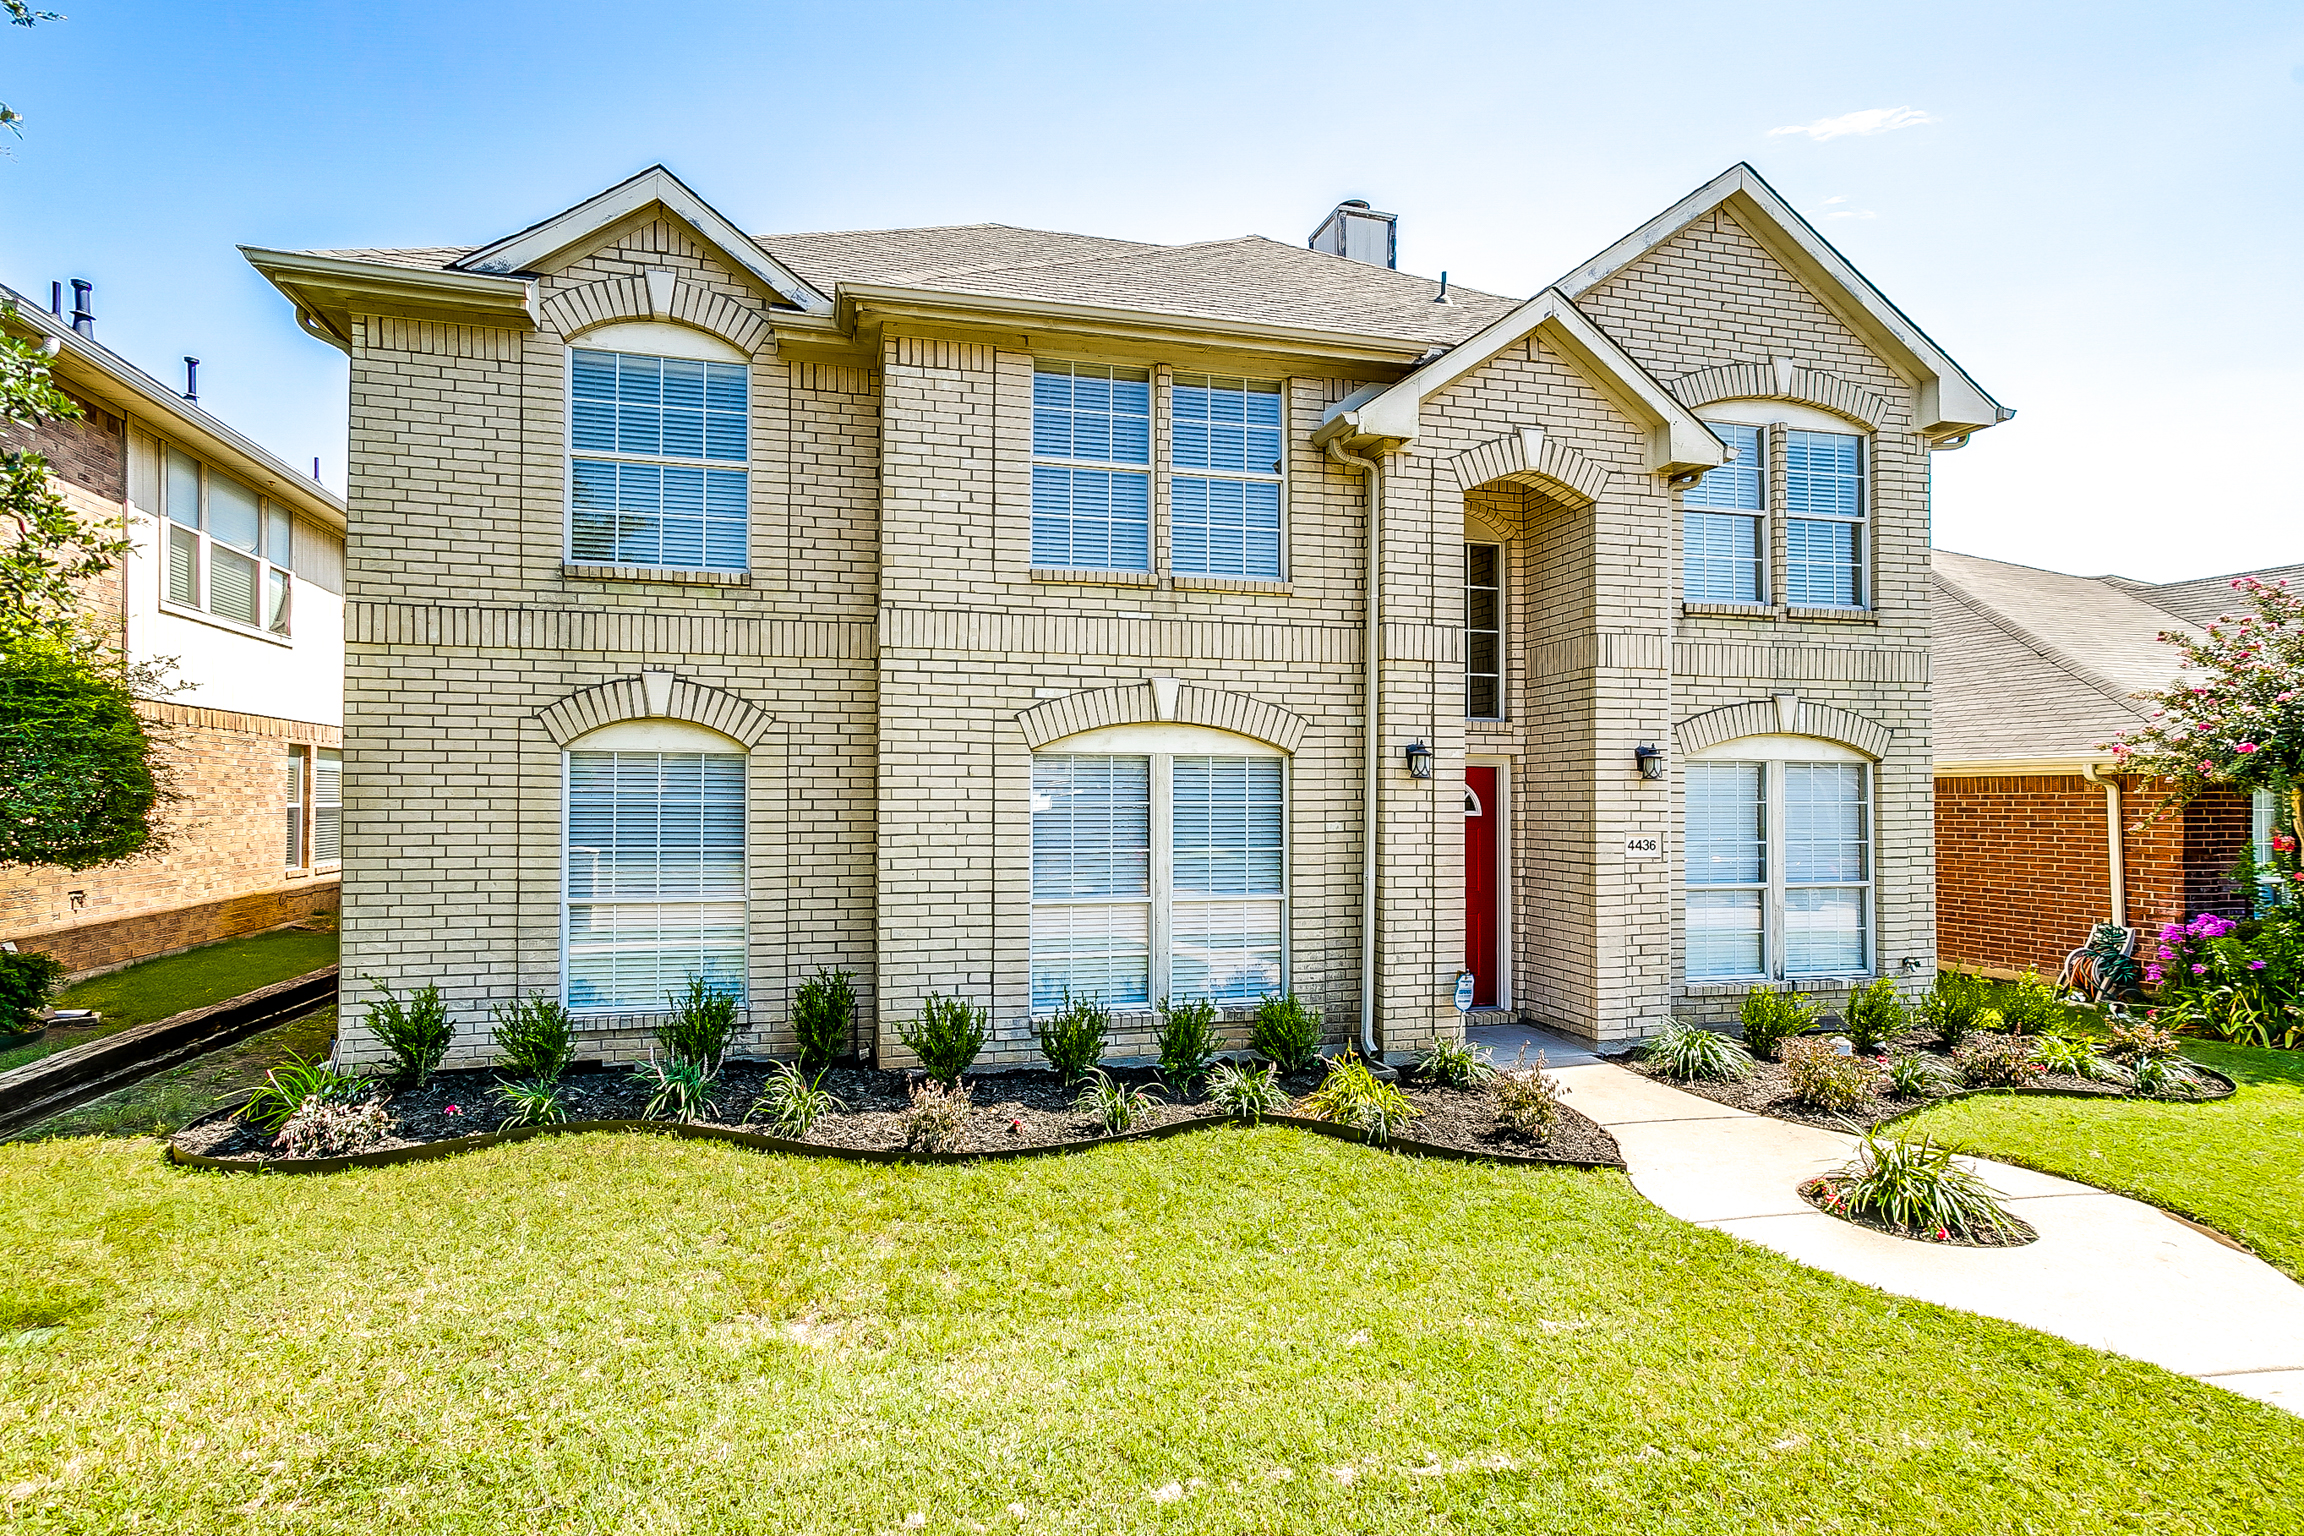 Rental properties in Plano are still a good investment.